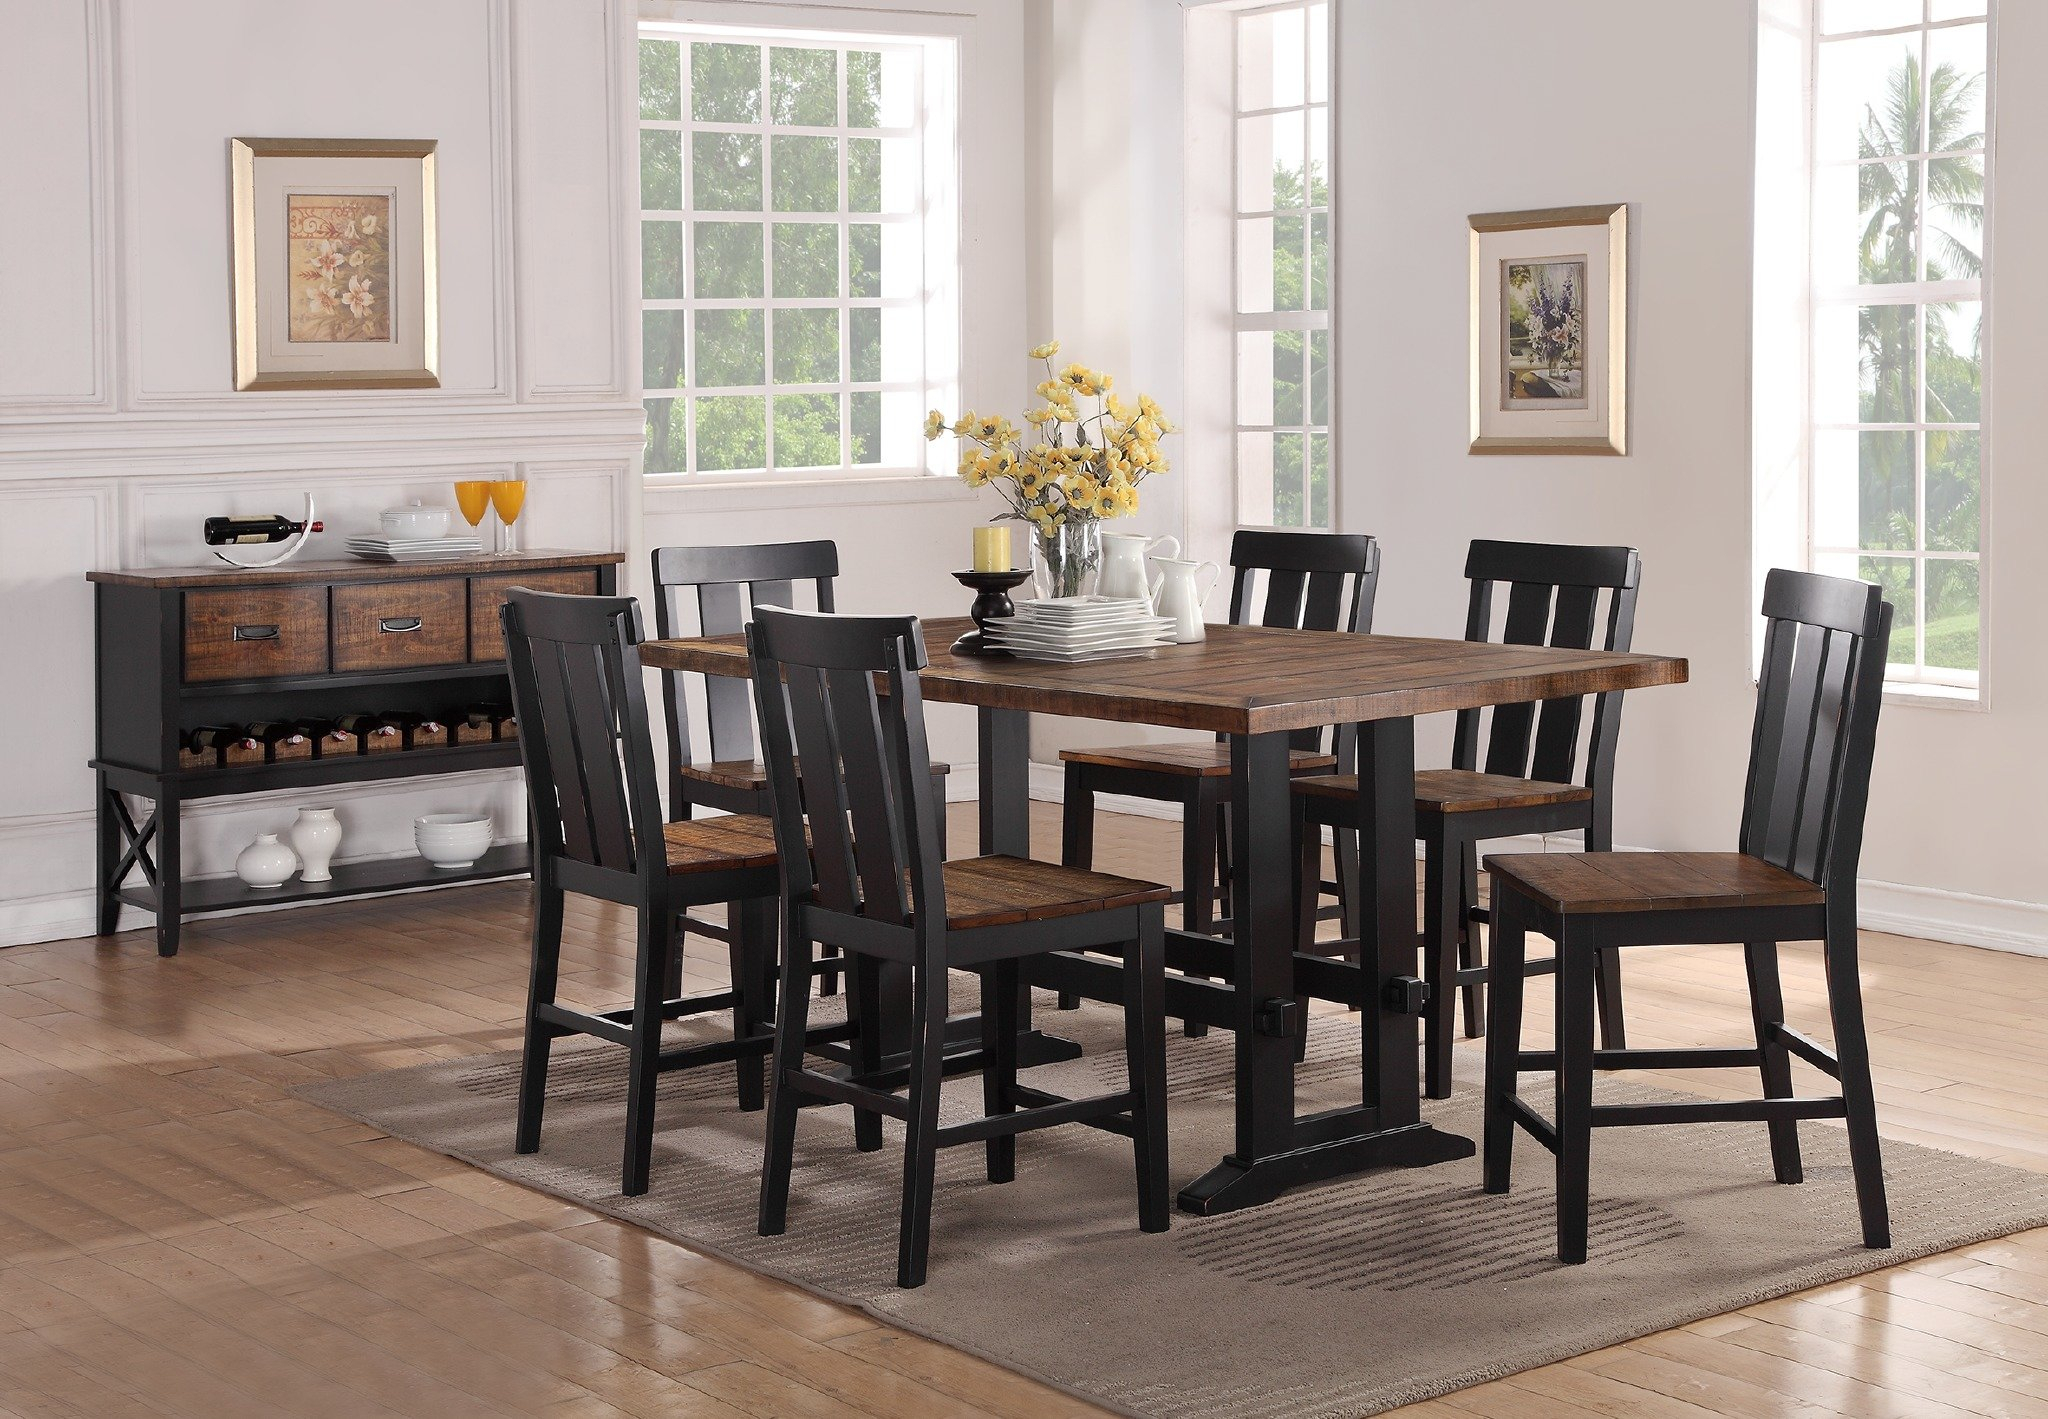 Fashionable Gracie Oaks Goodman 7 Piece Counter Height Dining Set & Reviews Intended For Goodman 5 Piece Solid Wood Dining Sets (Set Of 5) (#5 of 20)